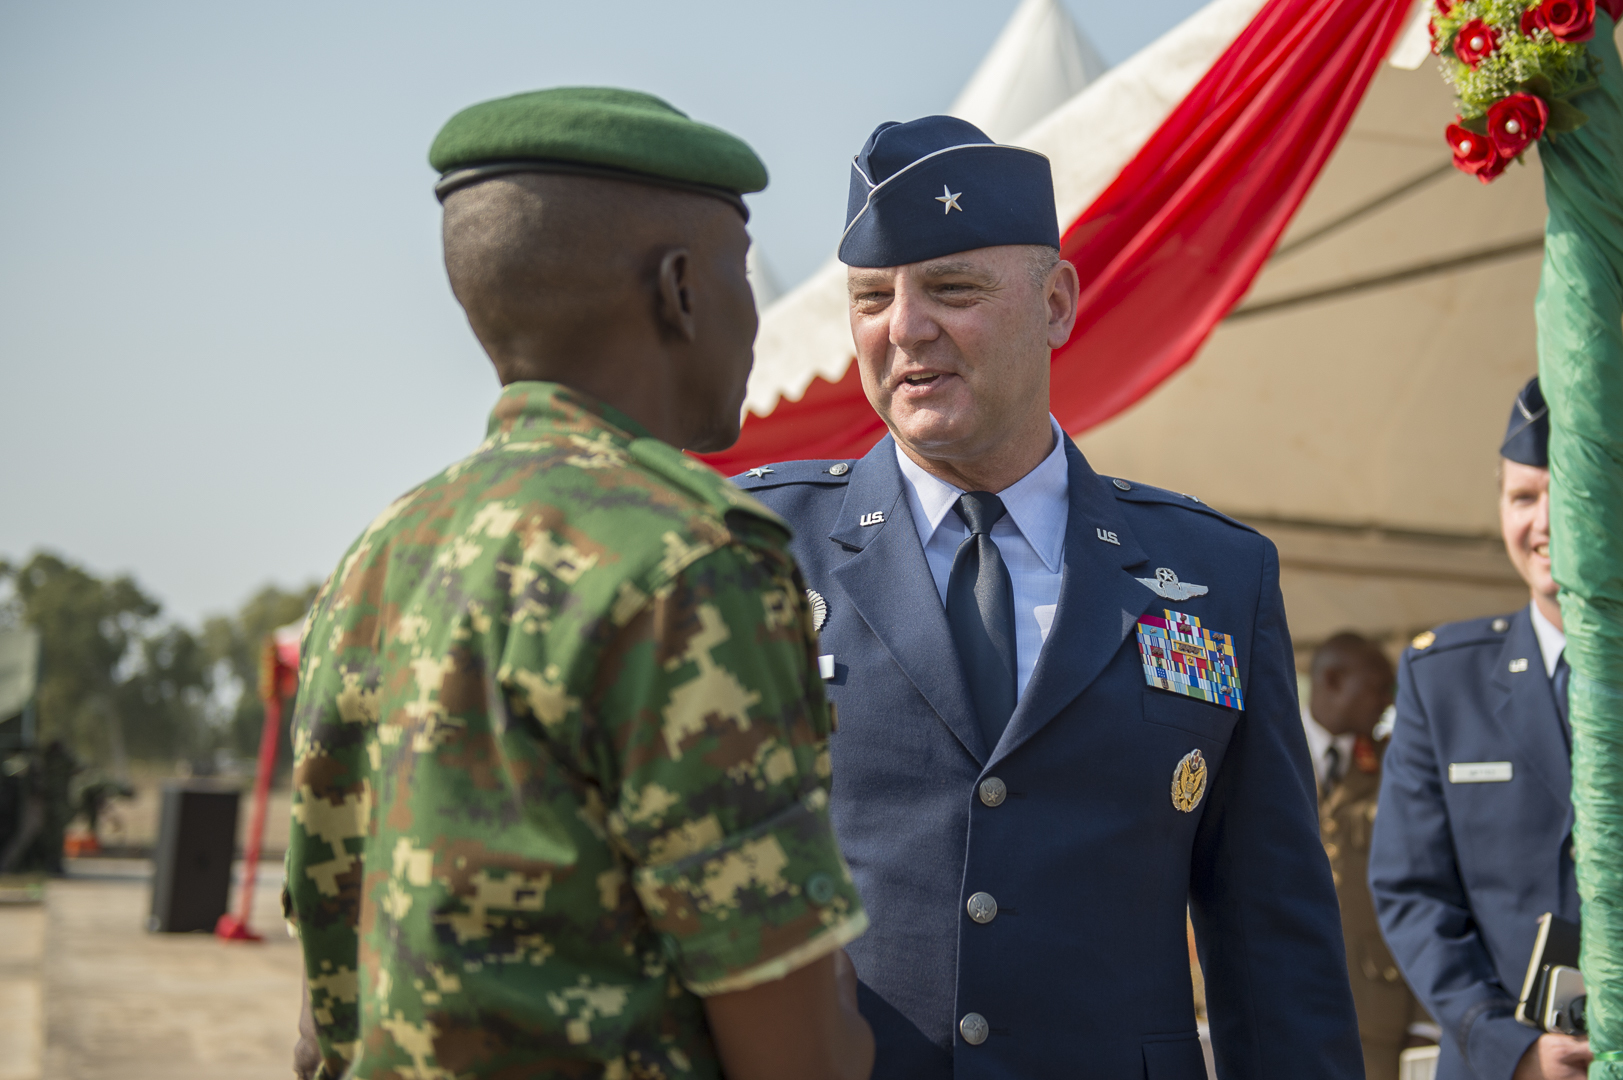 U.S. Air Force Brig. Gen. James R. Kriesel, deputy commanding general of Combined Joint Task Force-Horn of Africa, greets Burundi National Defence Force Lt. Gen. Prime Niyongabo, BNDF chief of defence, at the BNDF Senior Command and Staff College (SCSC) in Bujumbura, Burundi, July 19, 2019. The mission of the Burundi SCSC is to develop professional knowledge, skills in leadership, art and science of war to senior officers to enhance their capabilities in both command and staff duties at formation level and above. (U.S. Air Force Photo by Senior Airman Codie Trimble)